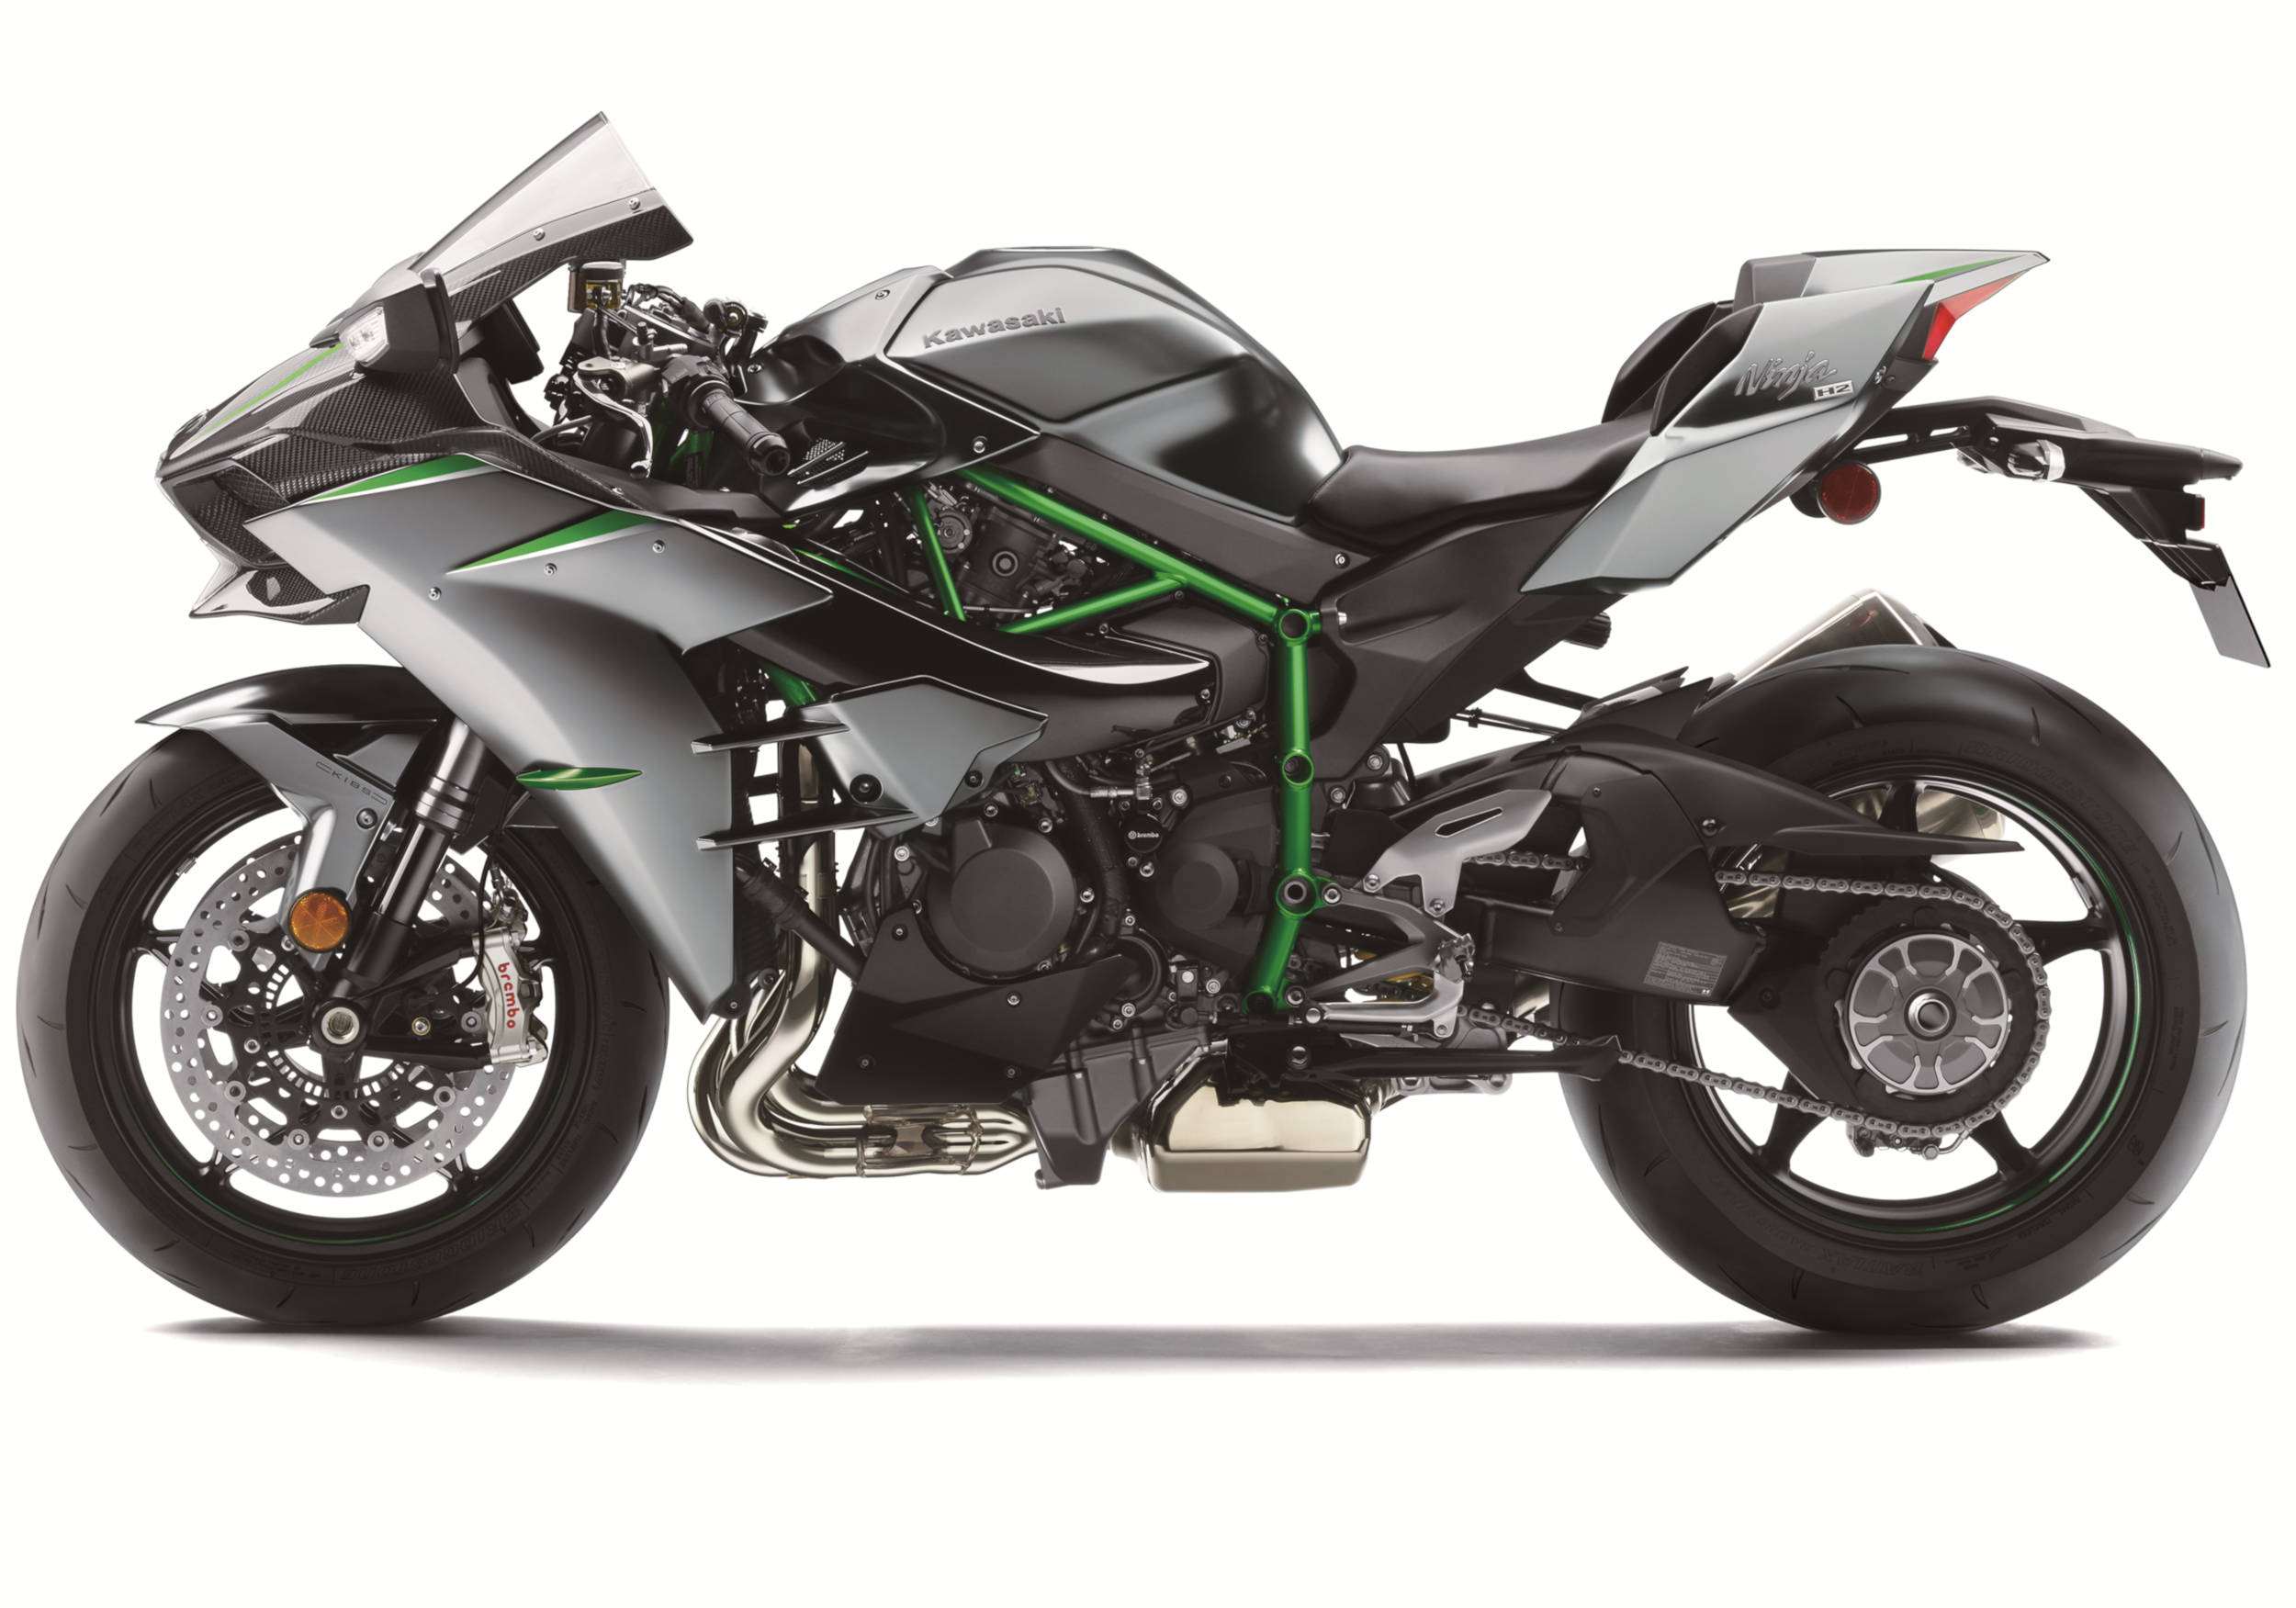 Kawasaki Announces Changes to 2019 Ninja H2, H2 Carbon and H2R